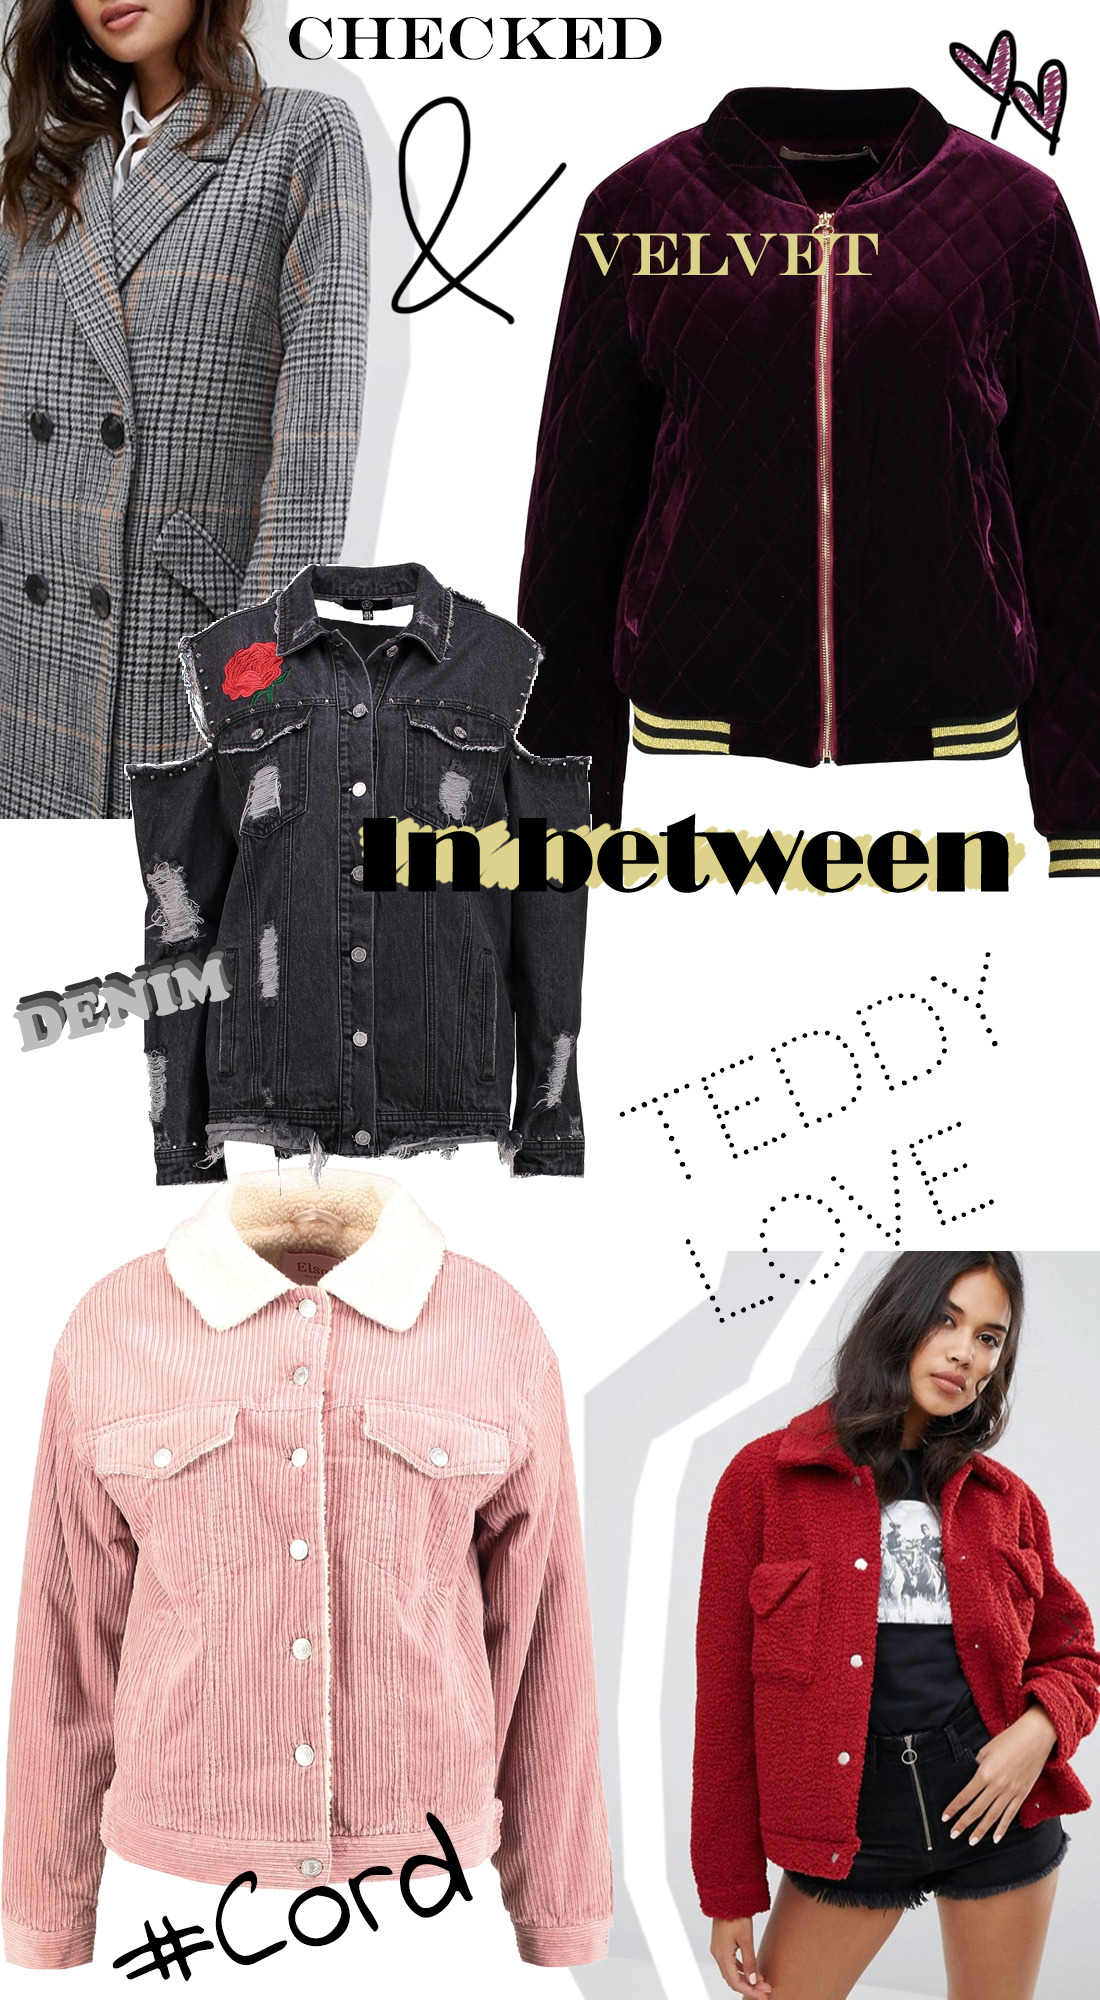 TOP 5 In between seasons jackets 2017, autumn street style, fall winter fashion | Want Get Repeat Fashion Blog Erlangen Nürnberg